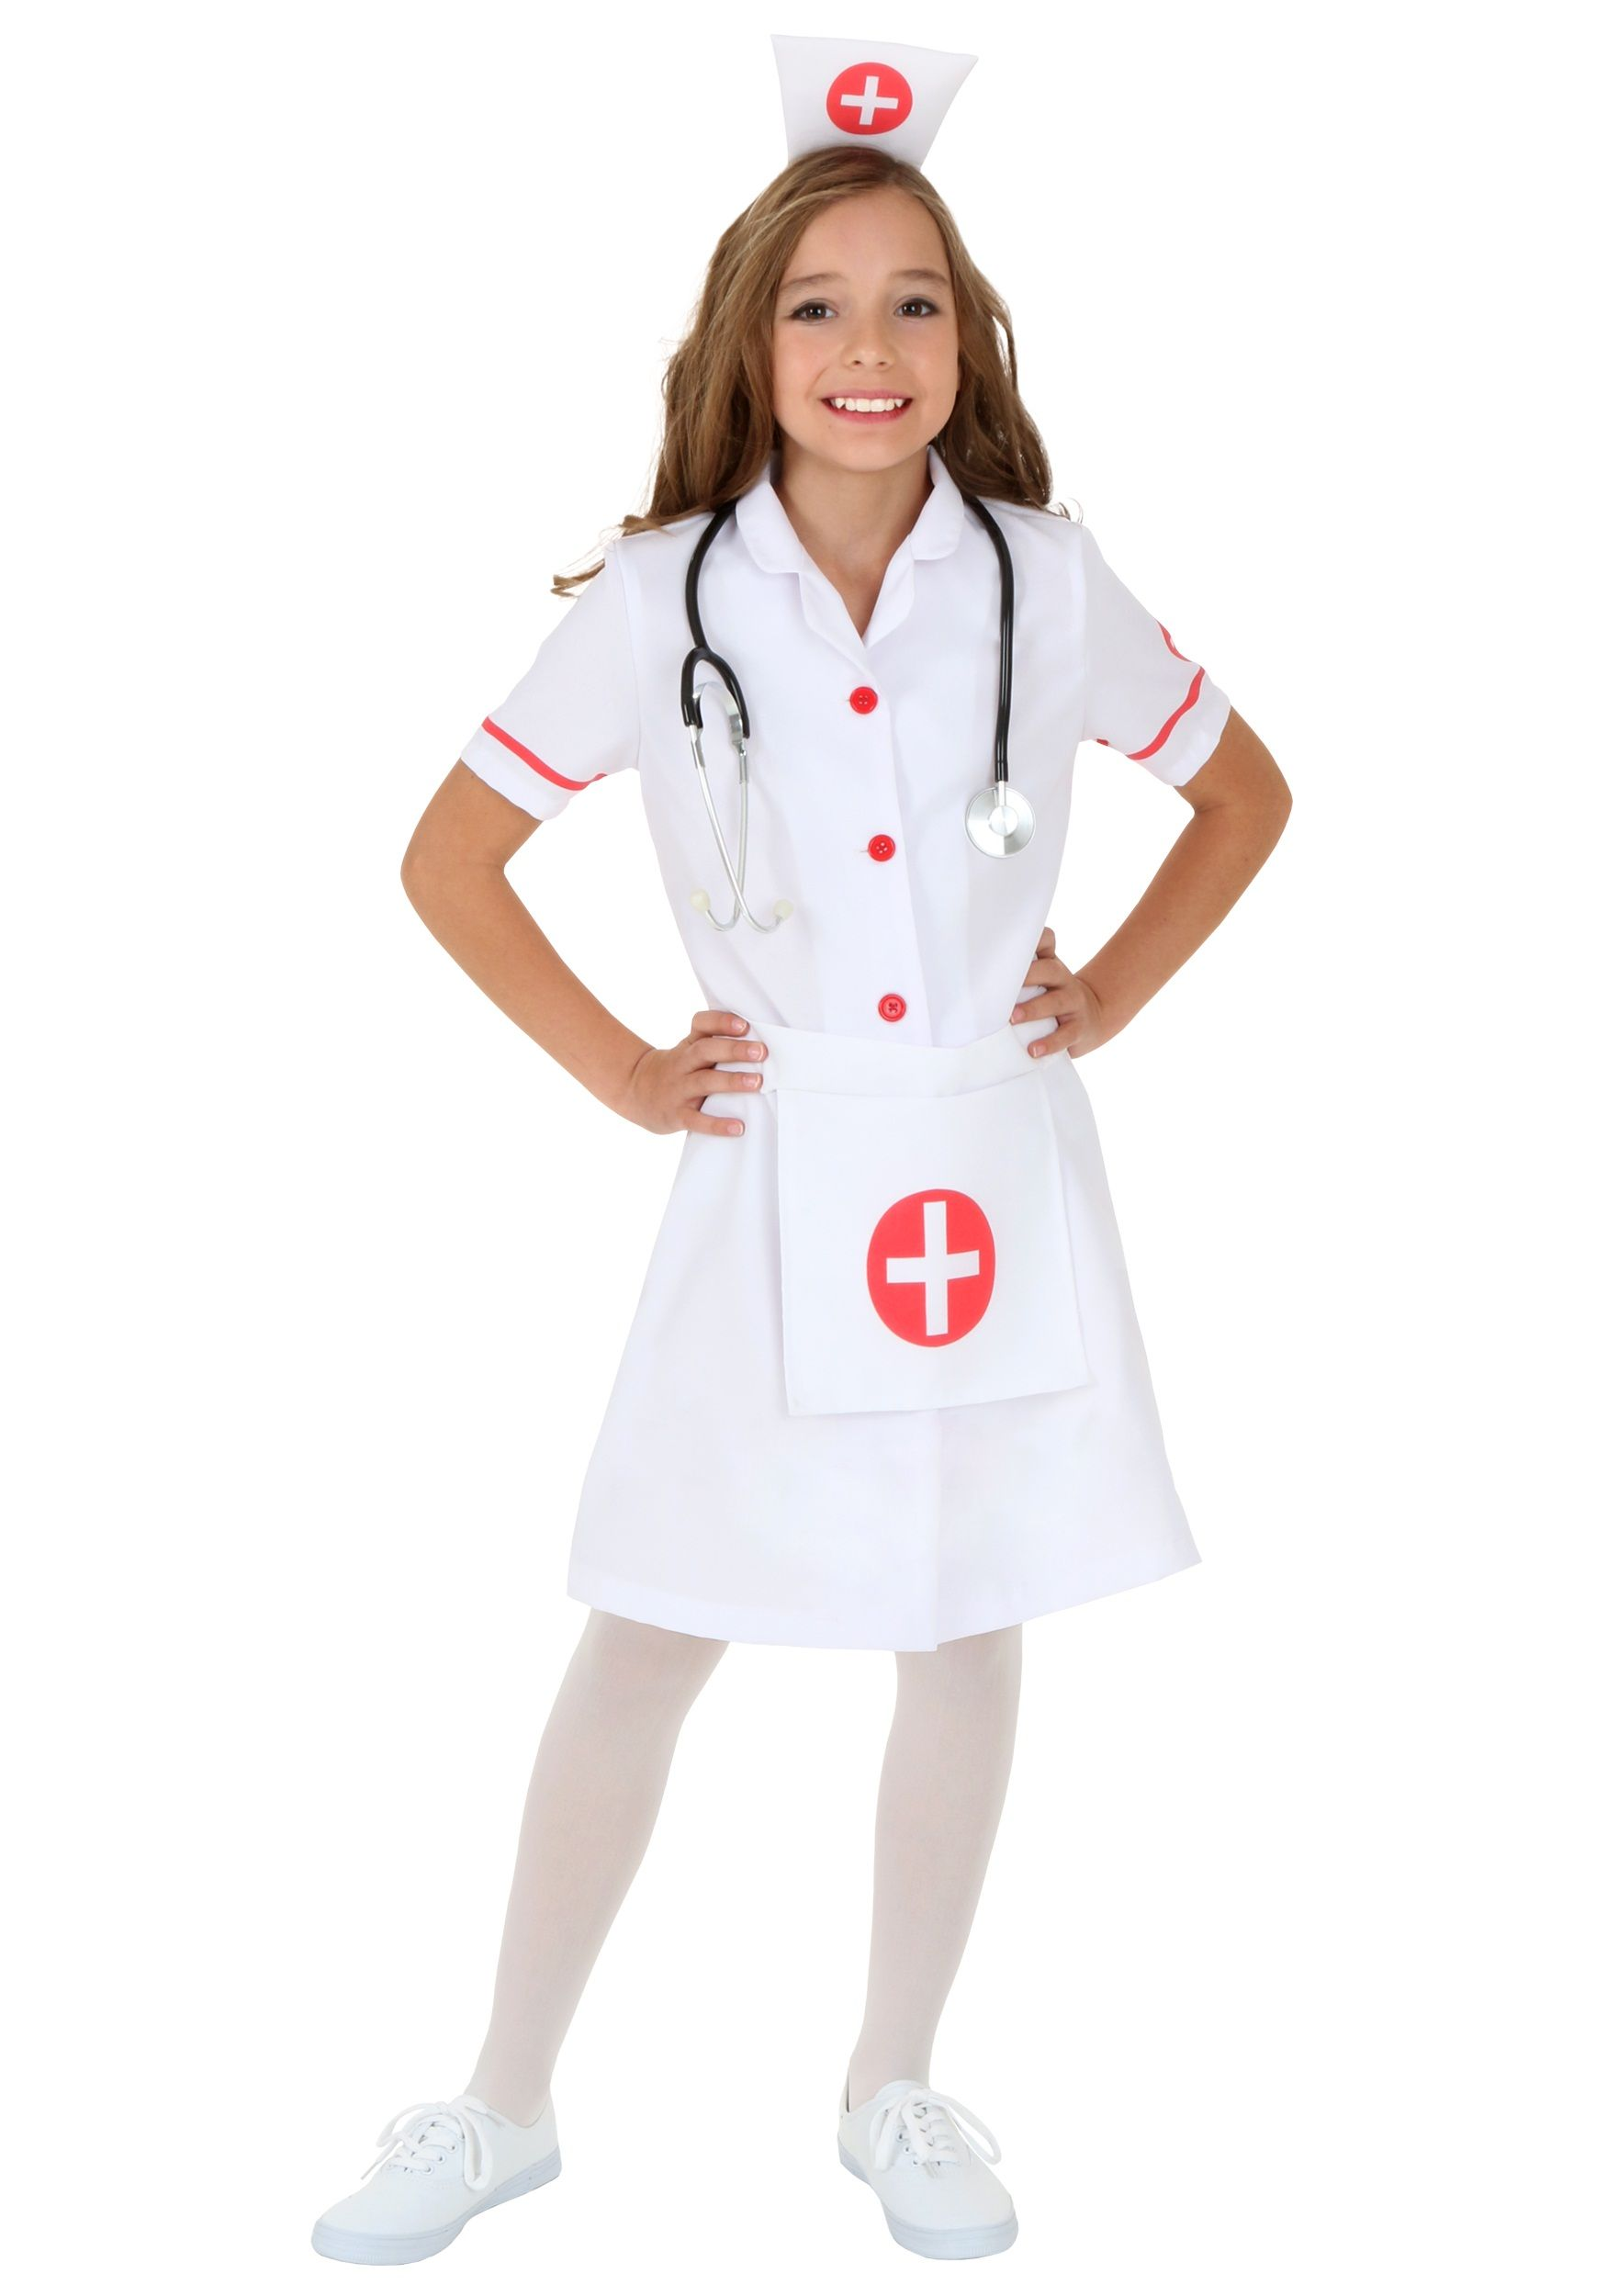 8dfeb2e4a3d7b Child Nurse Costume | Costumes in 2019 | Nurse costume, Nurse ...